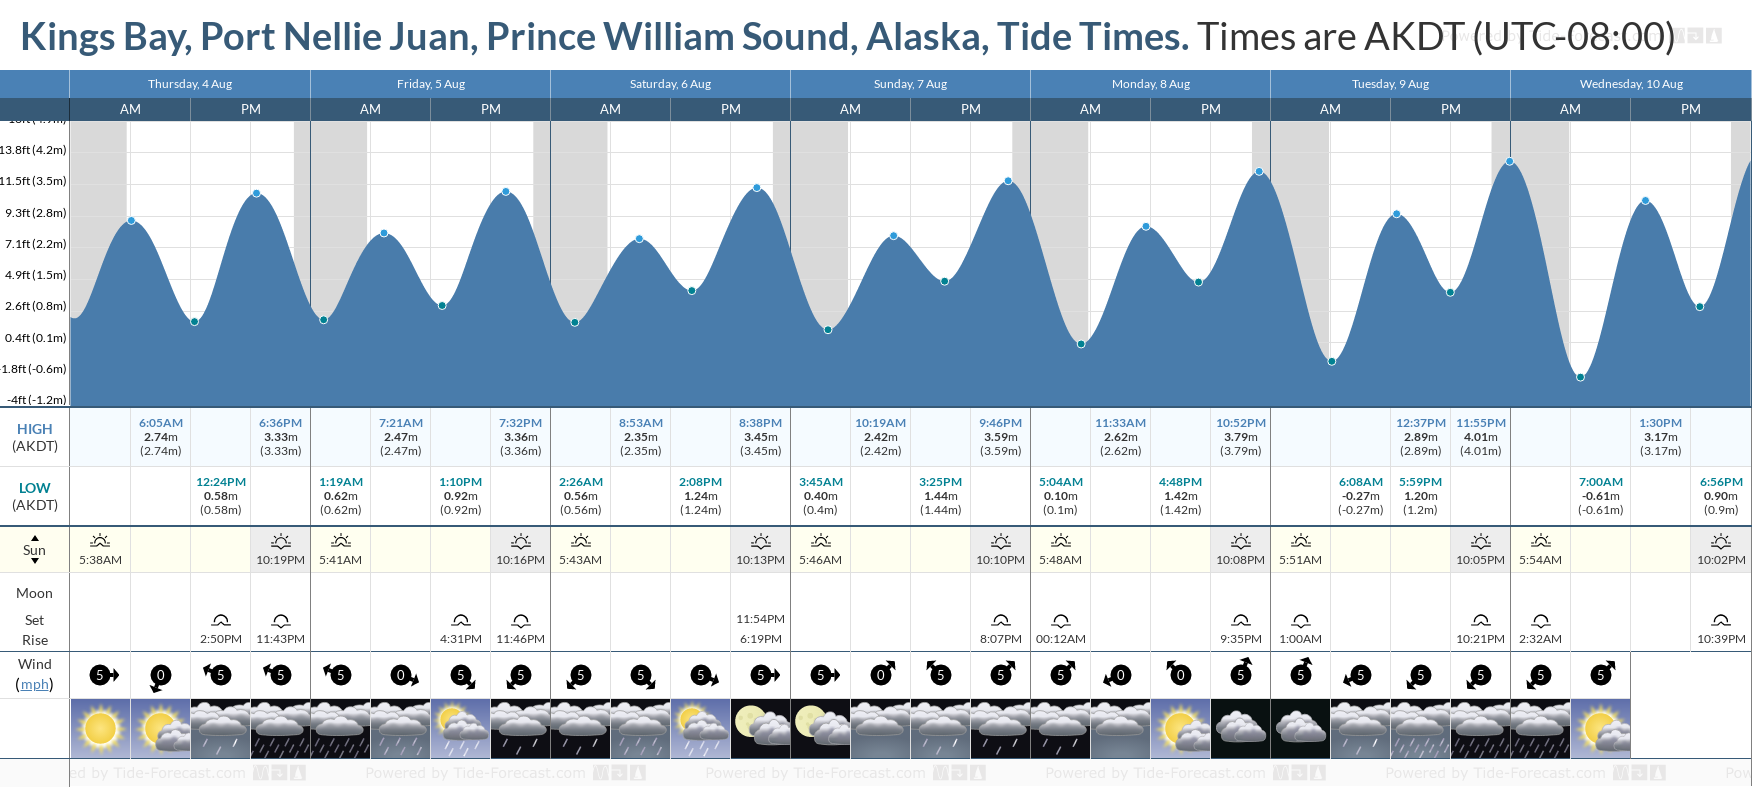 Kings Bay, Port Nellie Juan, Prince William Sound, Alaska Tide Chart including high and low tide tide times for the next 7 days